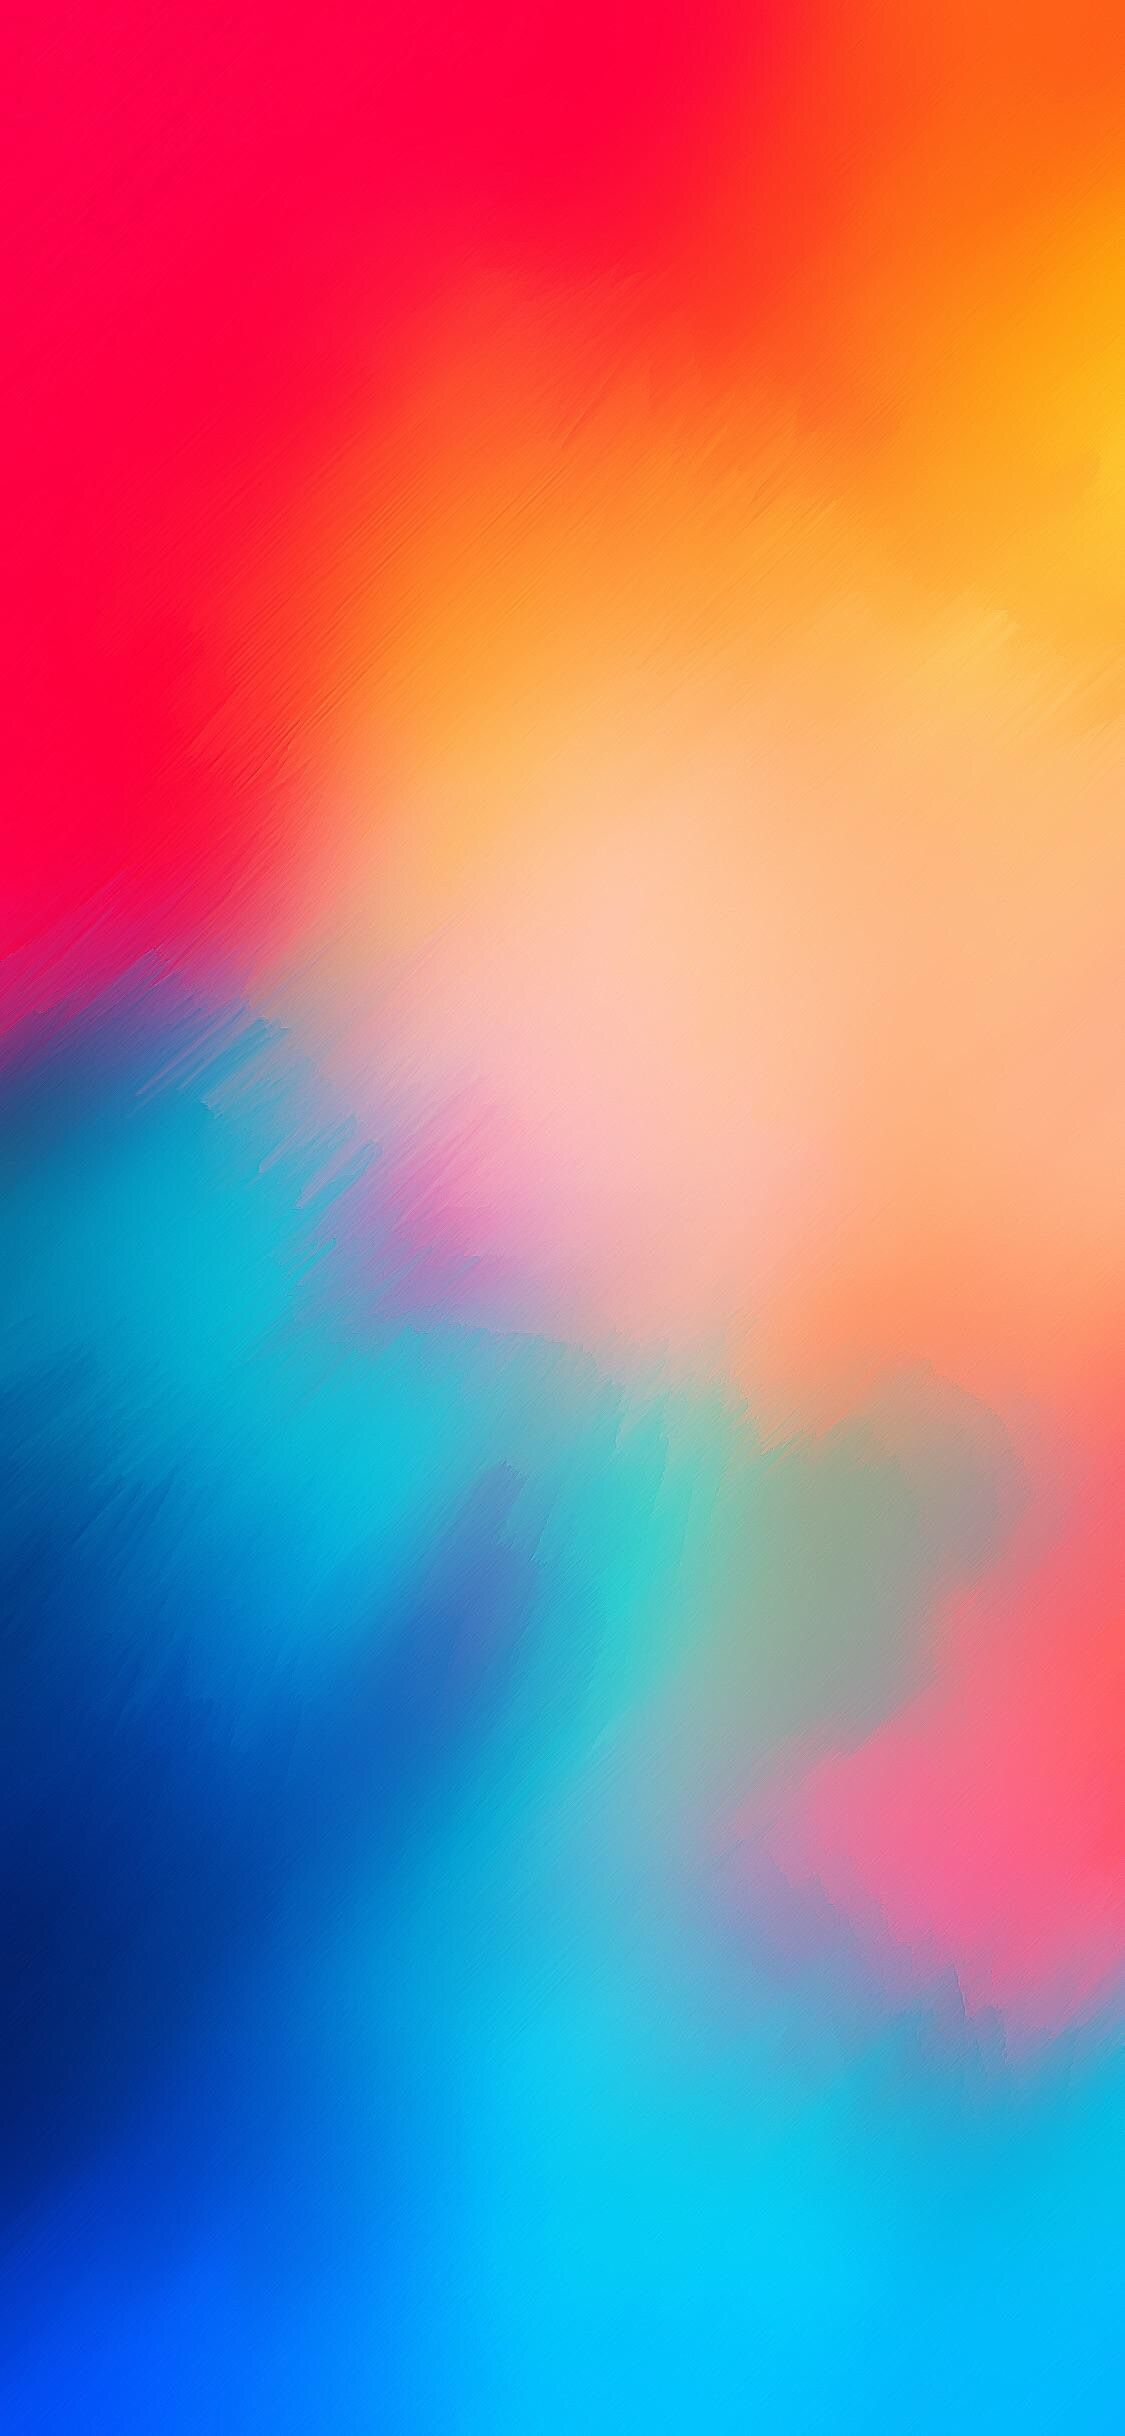 Ios 11 Iphone X Blue Red Abstract Apple Wallpaper Iphone 8 Clean Beauty Colour Ios Mini Colourful Wallpaper Iphone Ios 11 Wallpaper Apple Wallpaper Iphone x wallpaper hd 1080p 5 inch